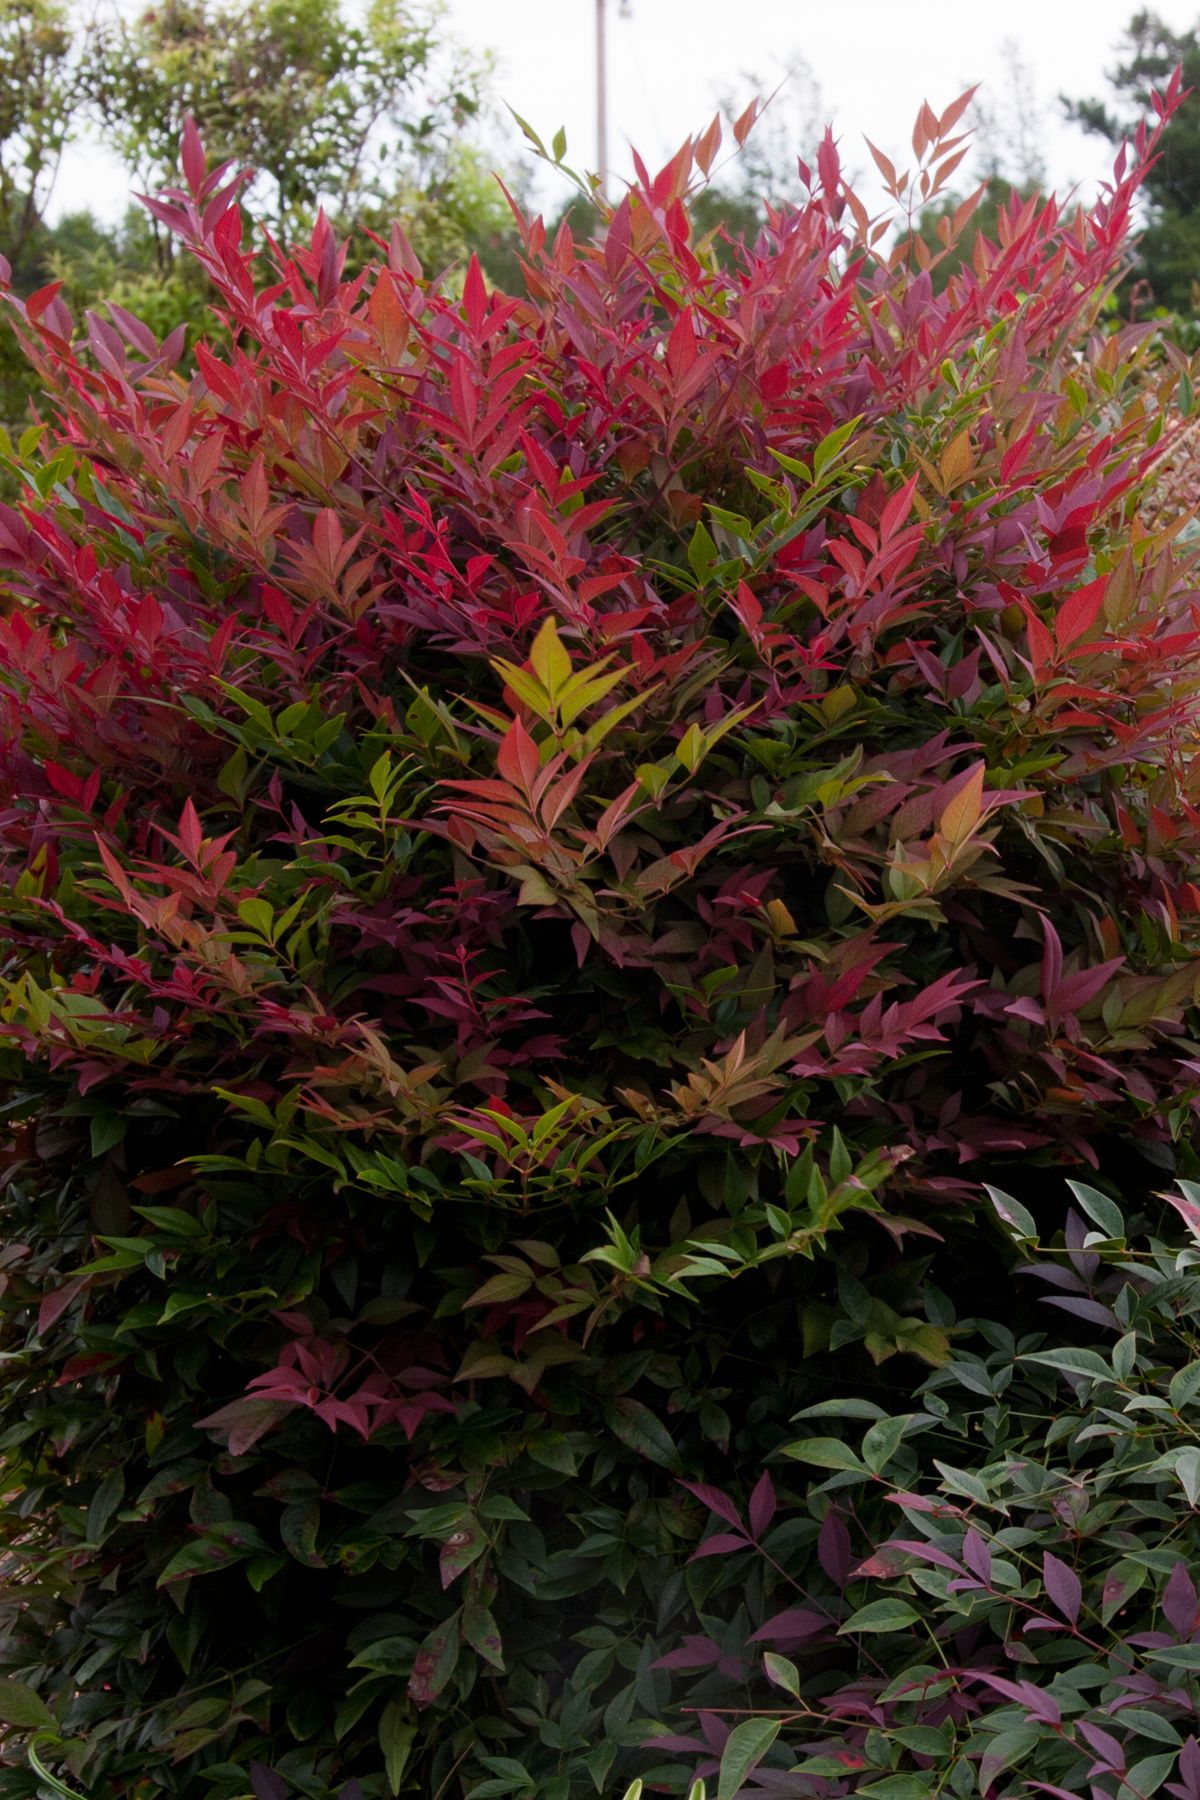 Nandina Obsession This New And Distinctive Nandina Is An Upright Compact Dense Grower With Brilliant Red New F Southern Living Plants Evergreen Shrubs Plants